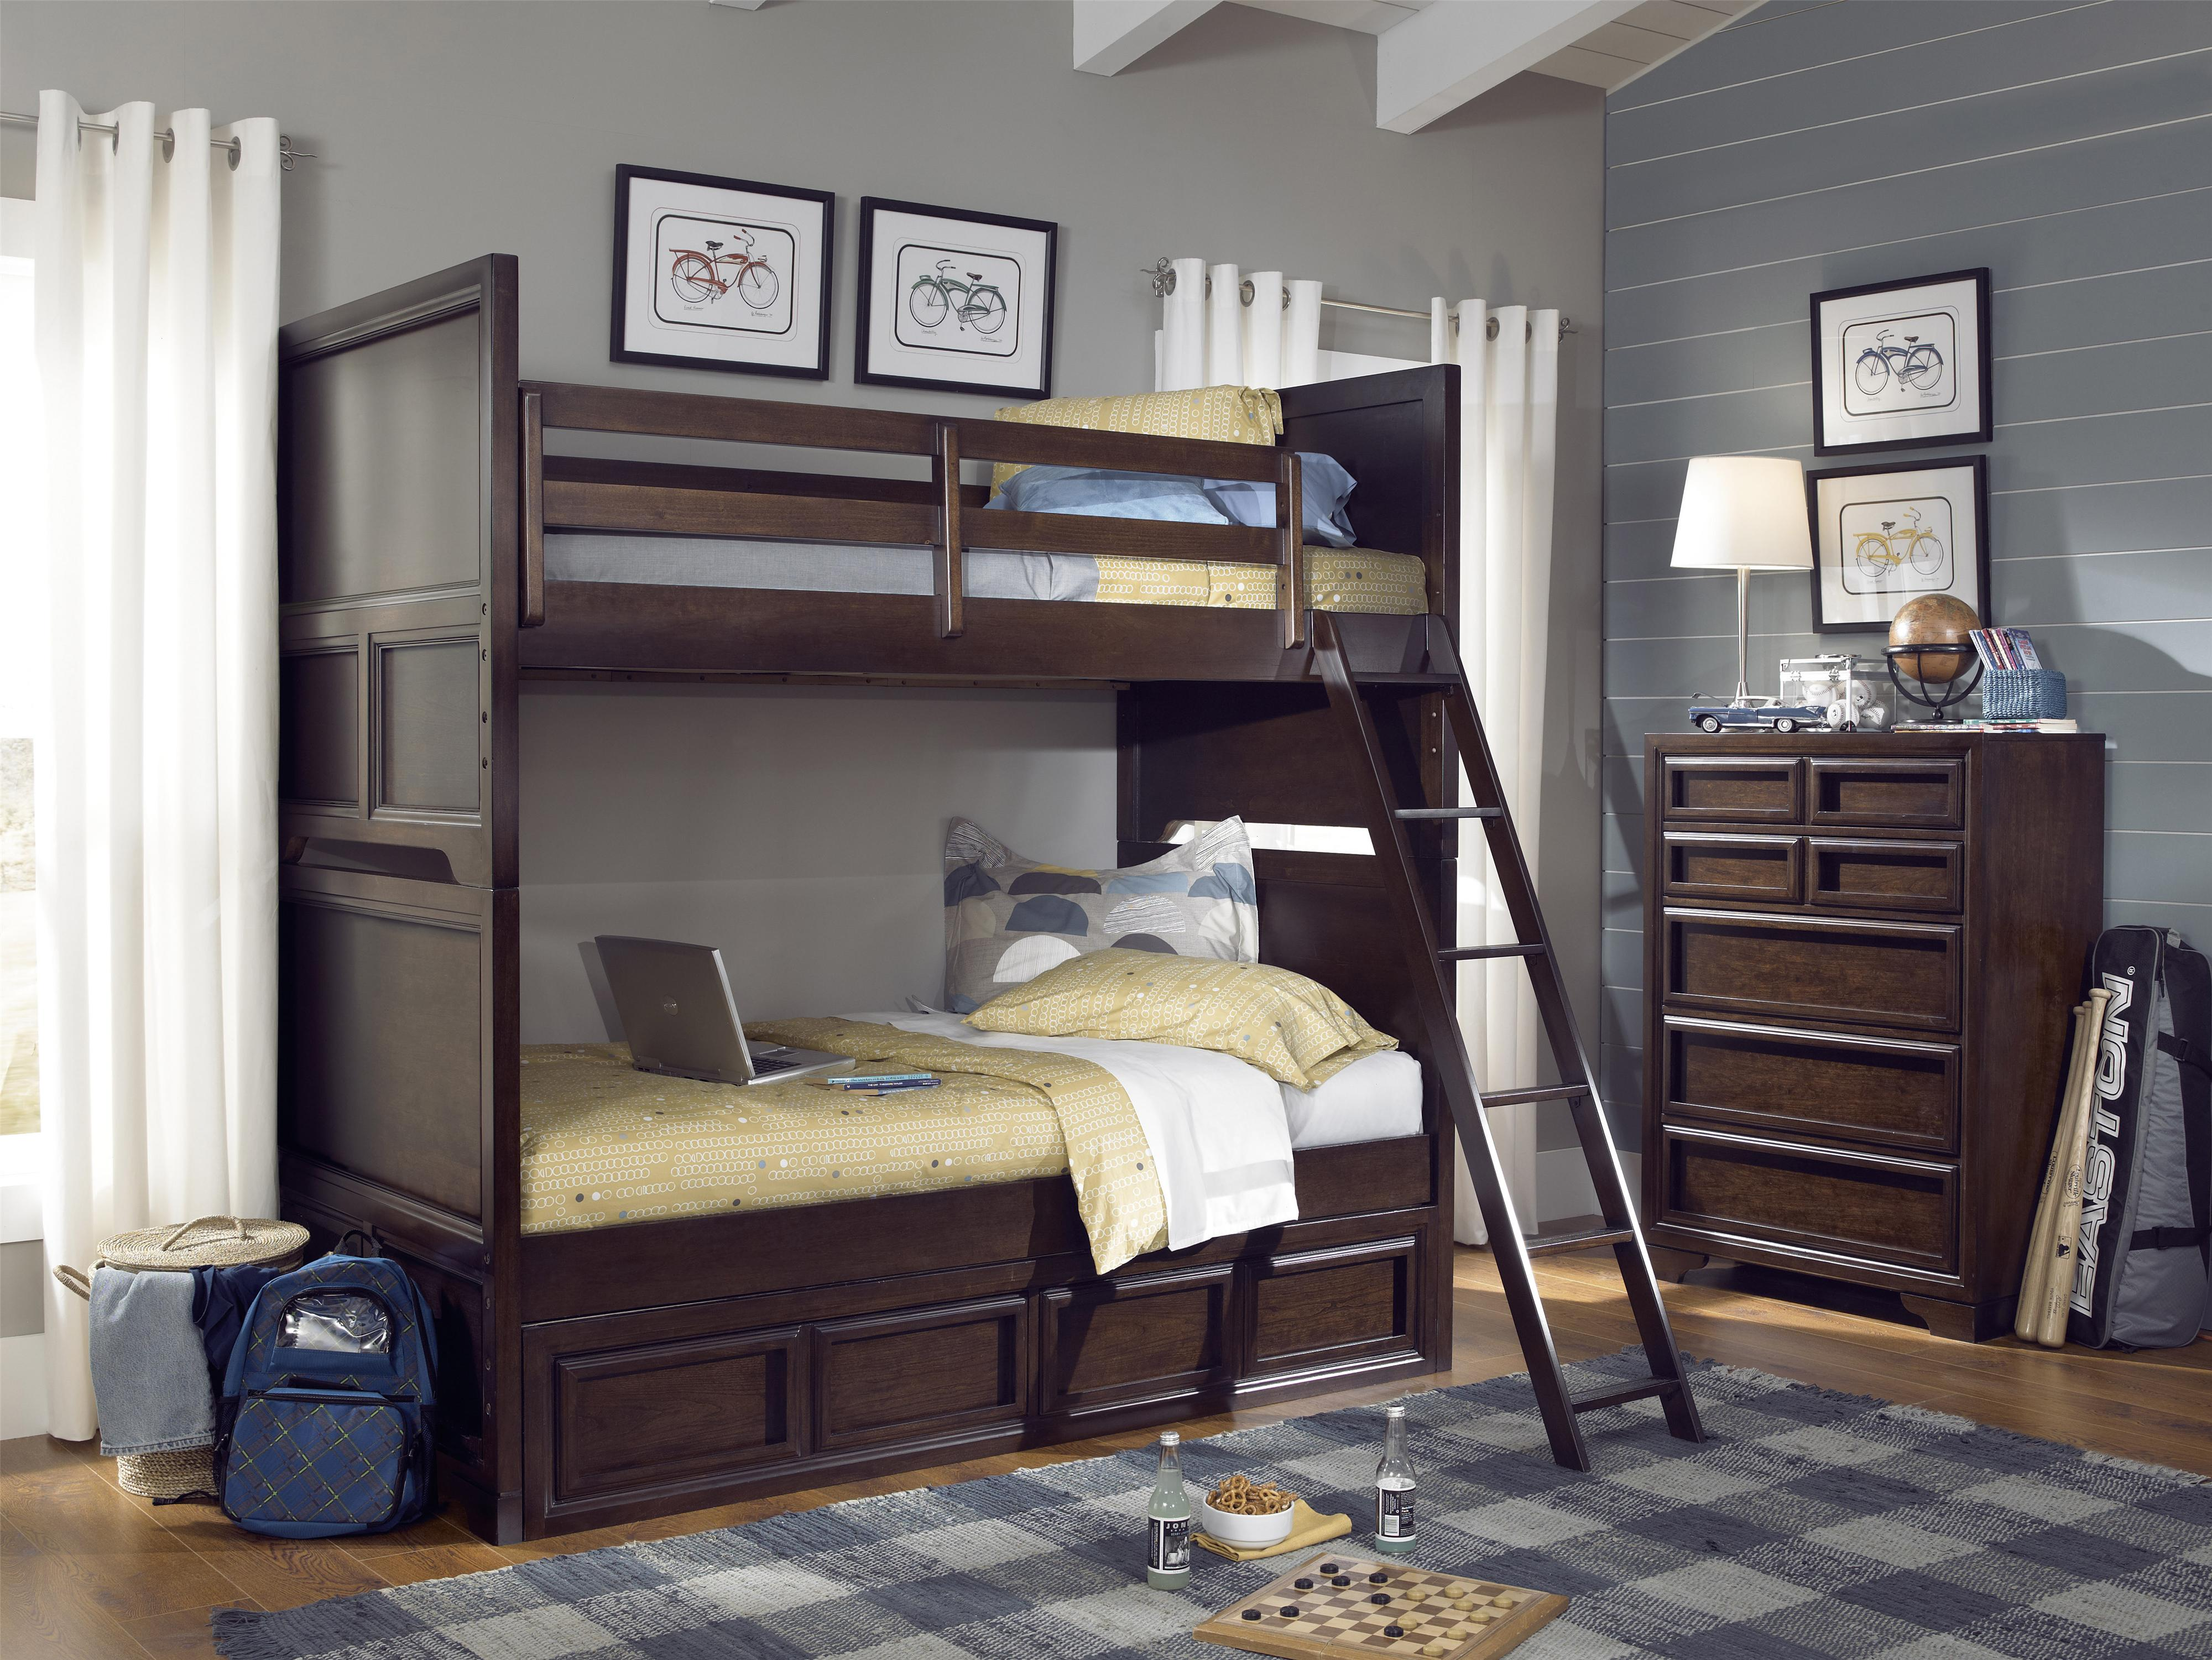 Legacy Classic Kids Benchmark Twin Over Twin Bunk Bedroom Group - Item Number: 2970 T Bedroom Group 3